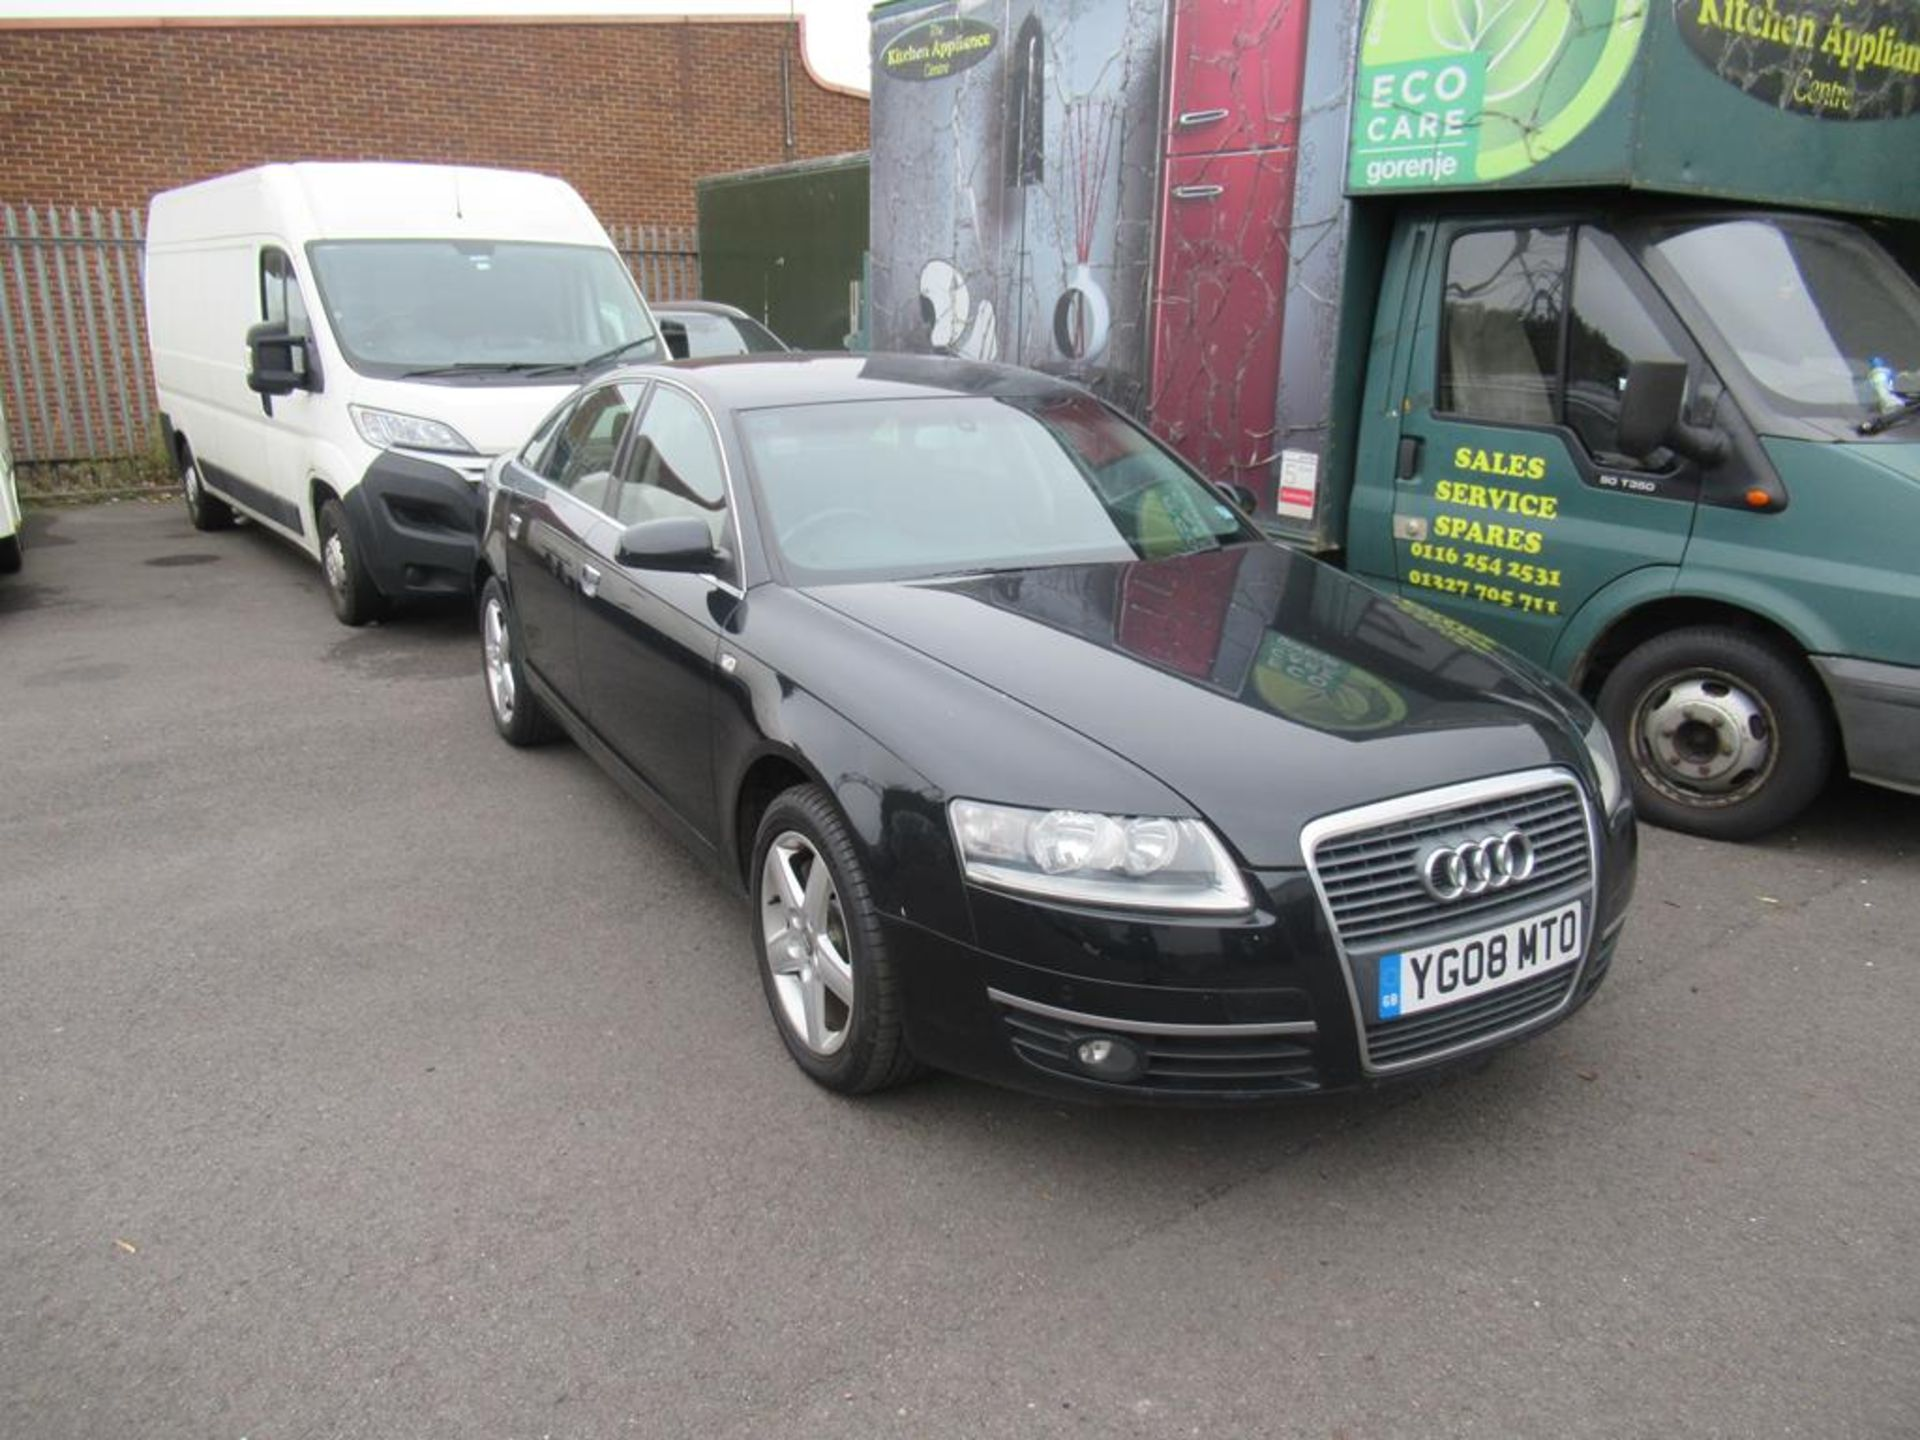 Audi A6 2.7TDI automatic with SatNav and bluetooth - Image 2 of 16